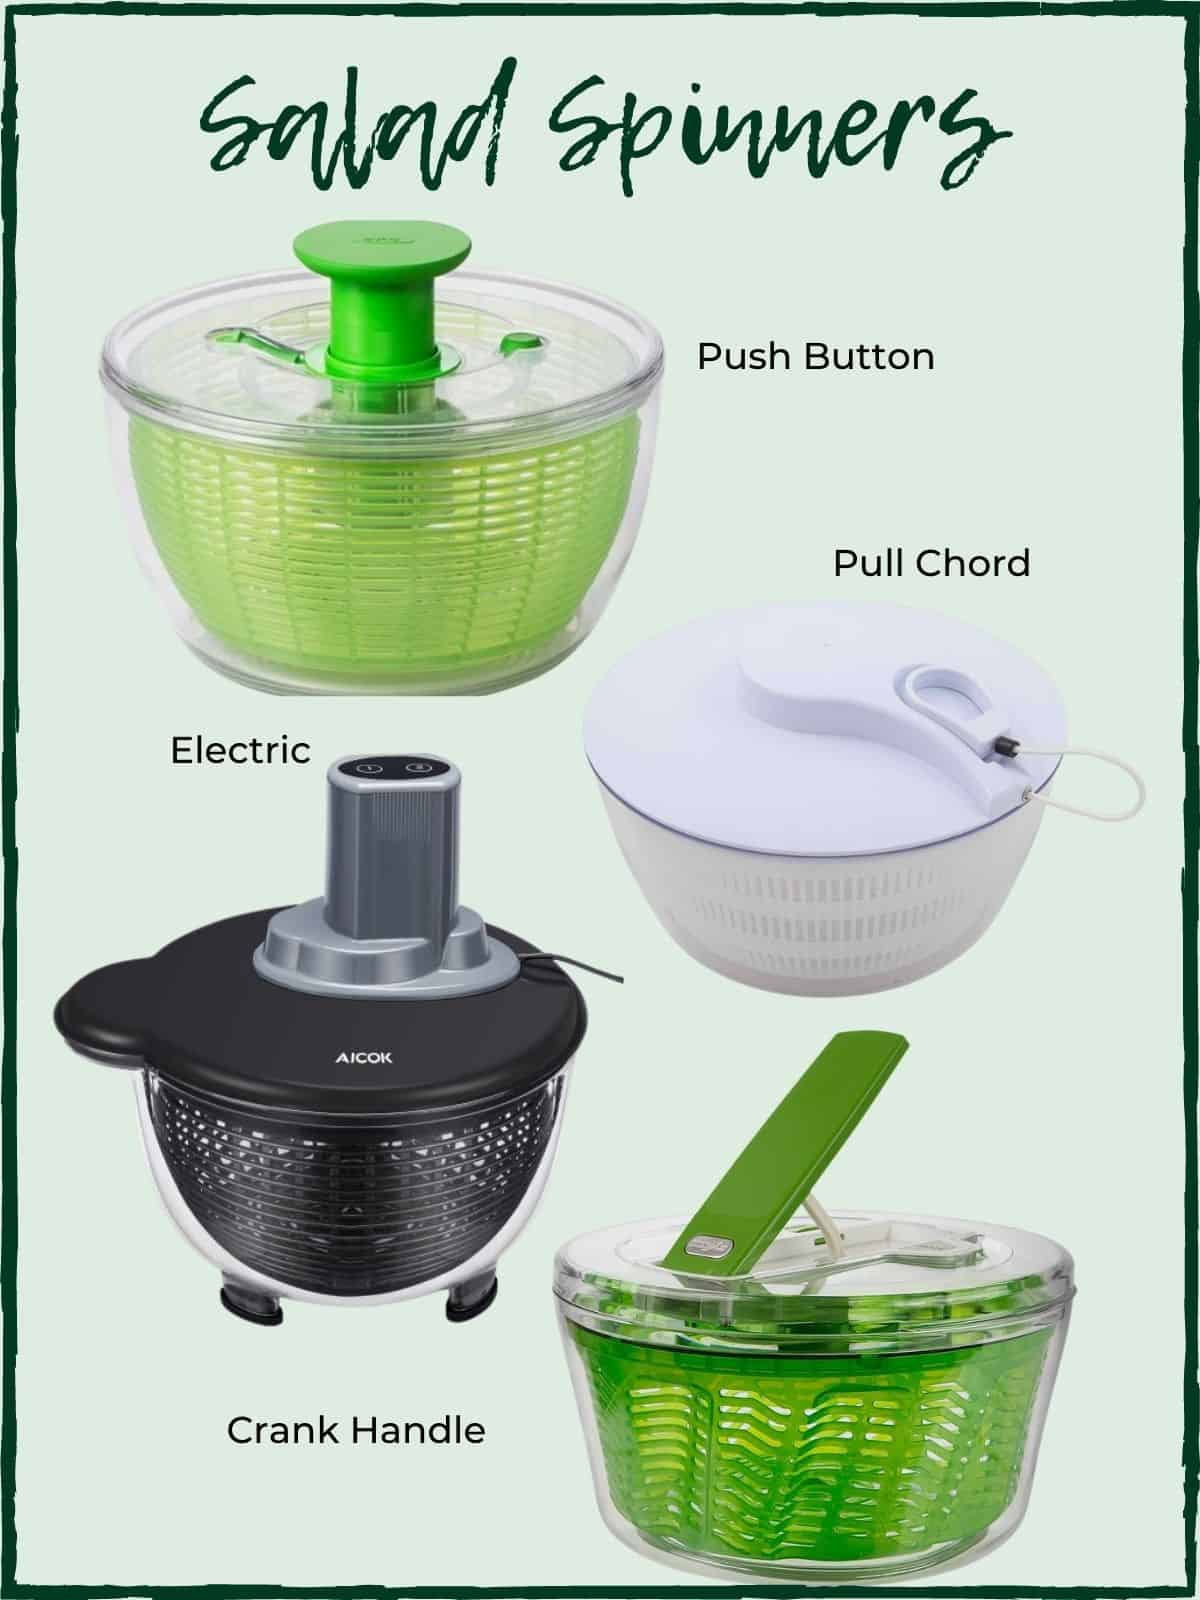 Types of salad spinners